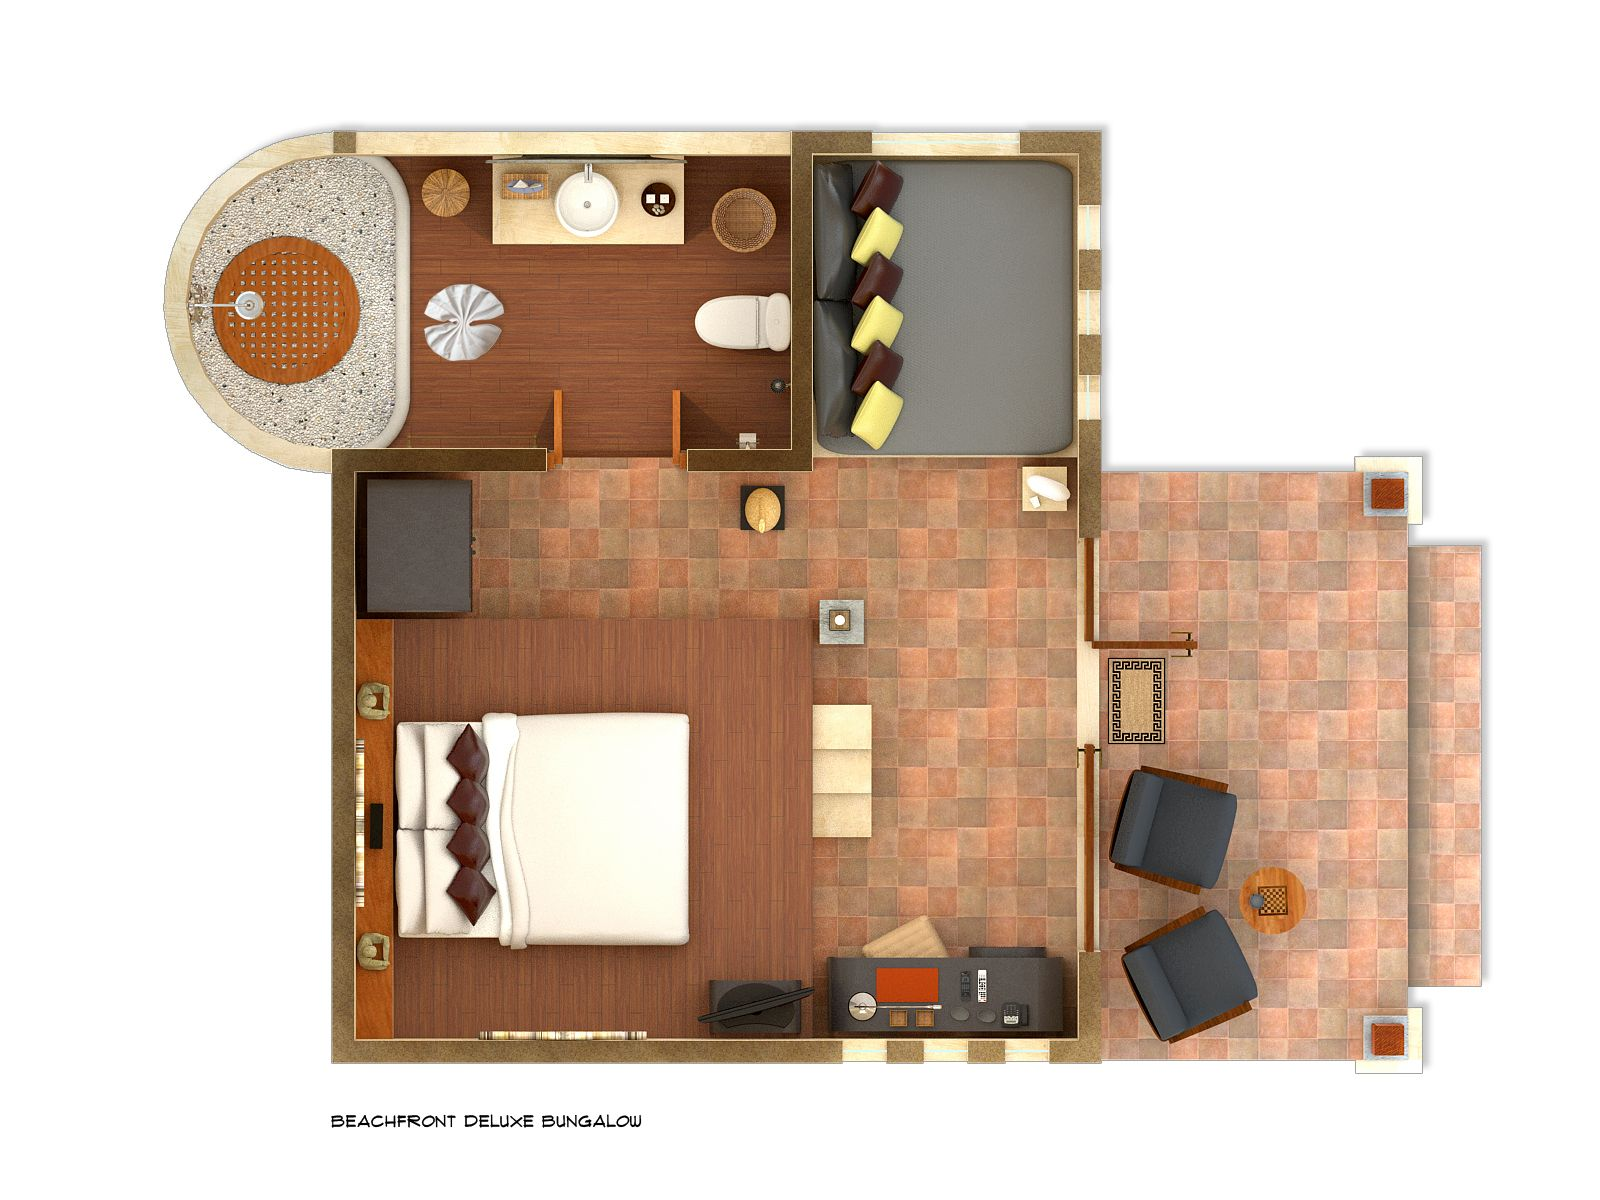 Beach bungalow floor plans google search home for Bangalo design